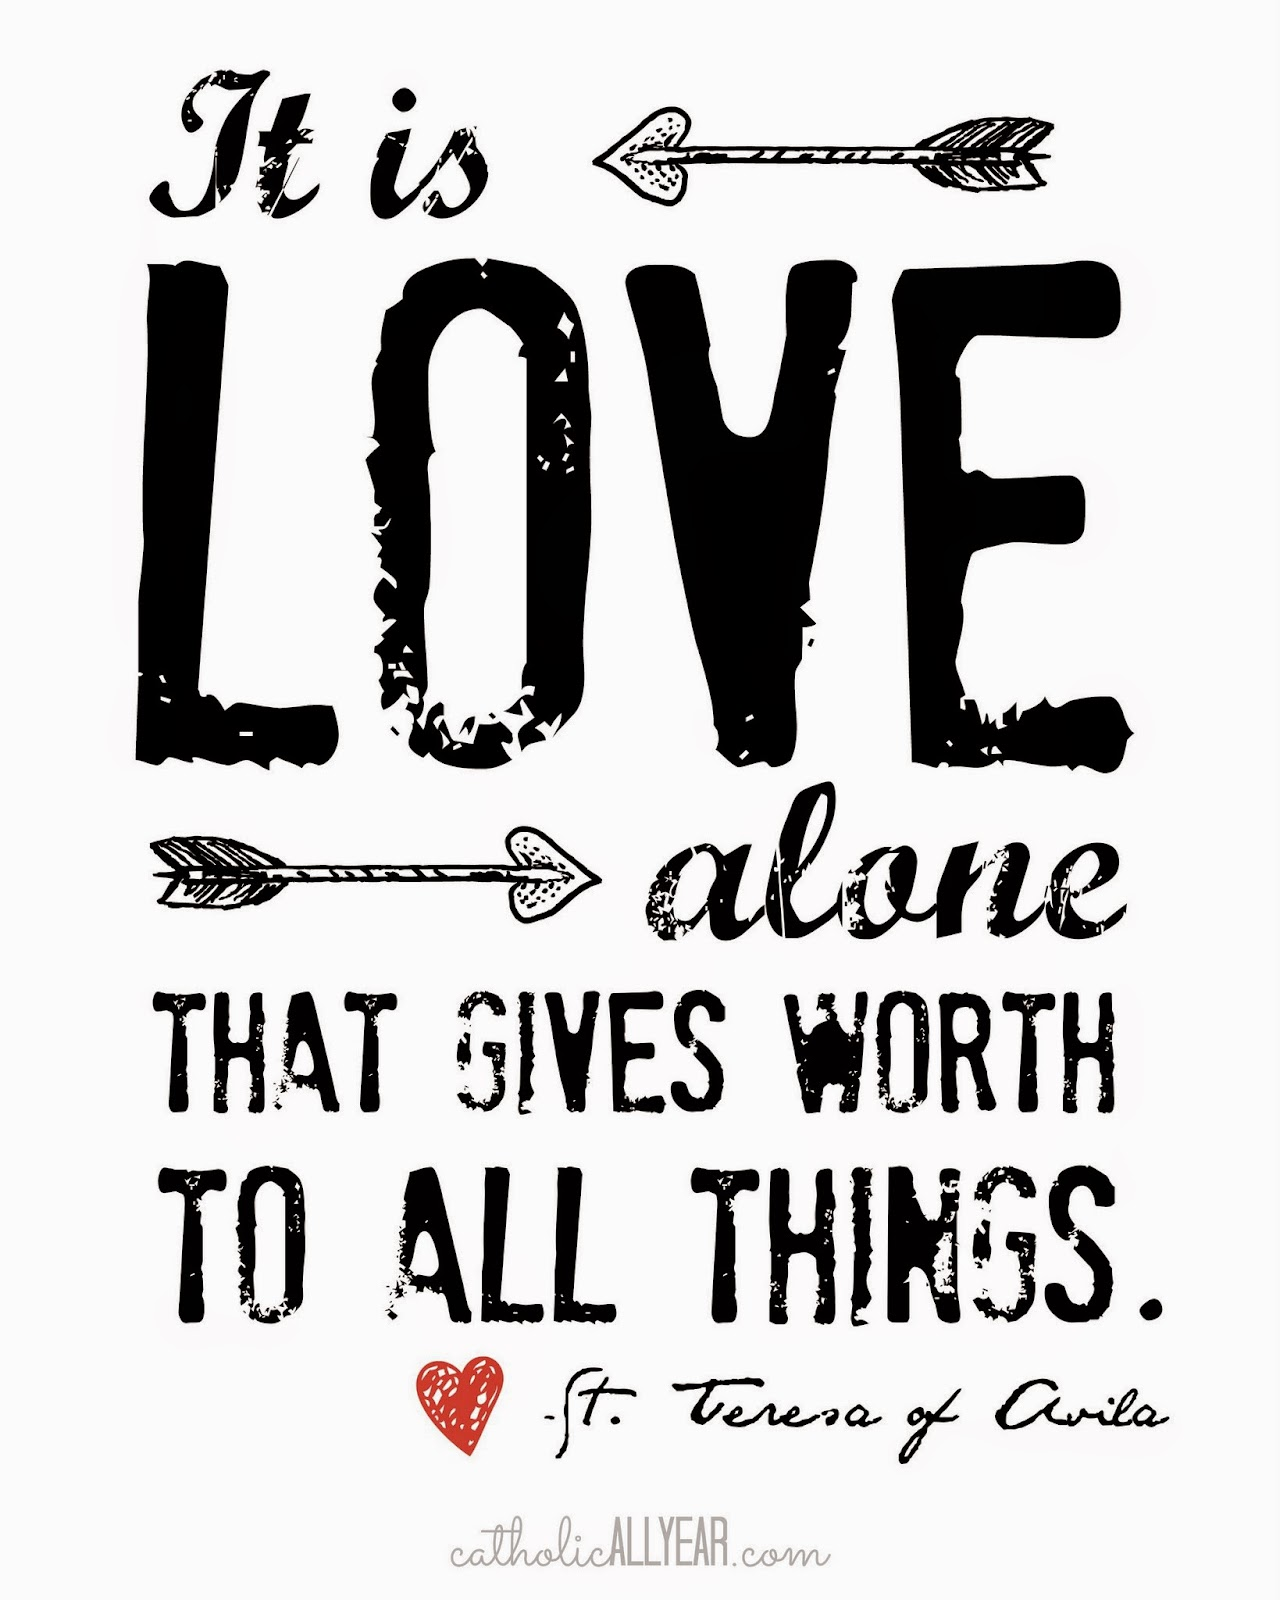 Seven free printable catholic valentines catholic all year 4 it is love alone that gives worth to all things st teresa of avila fandeluxe Image collections